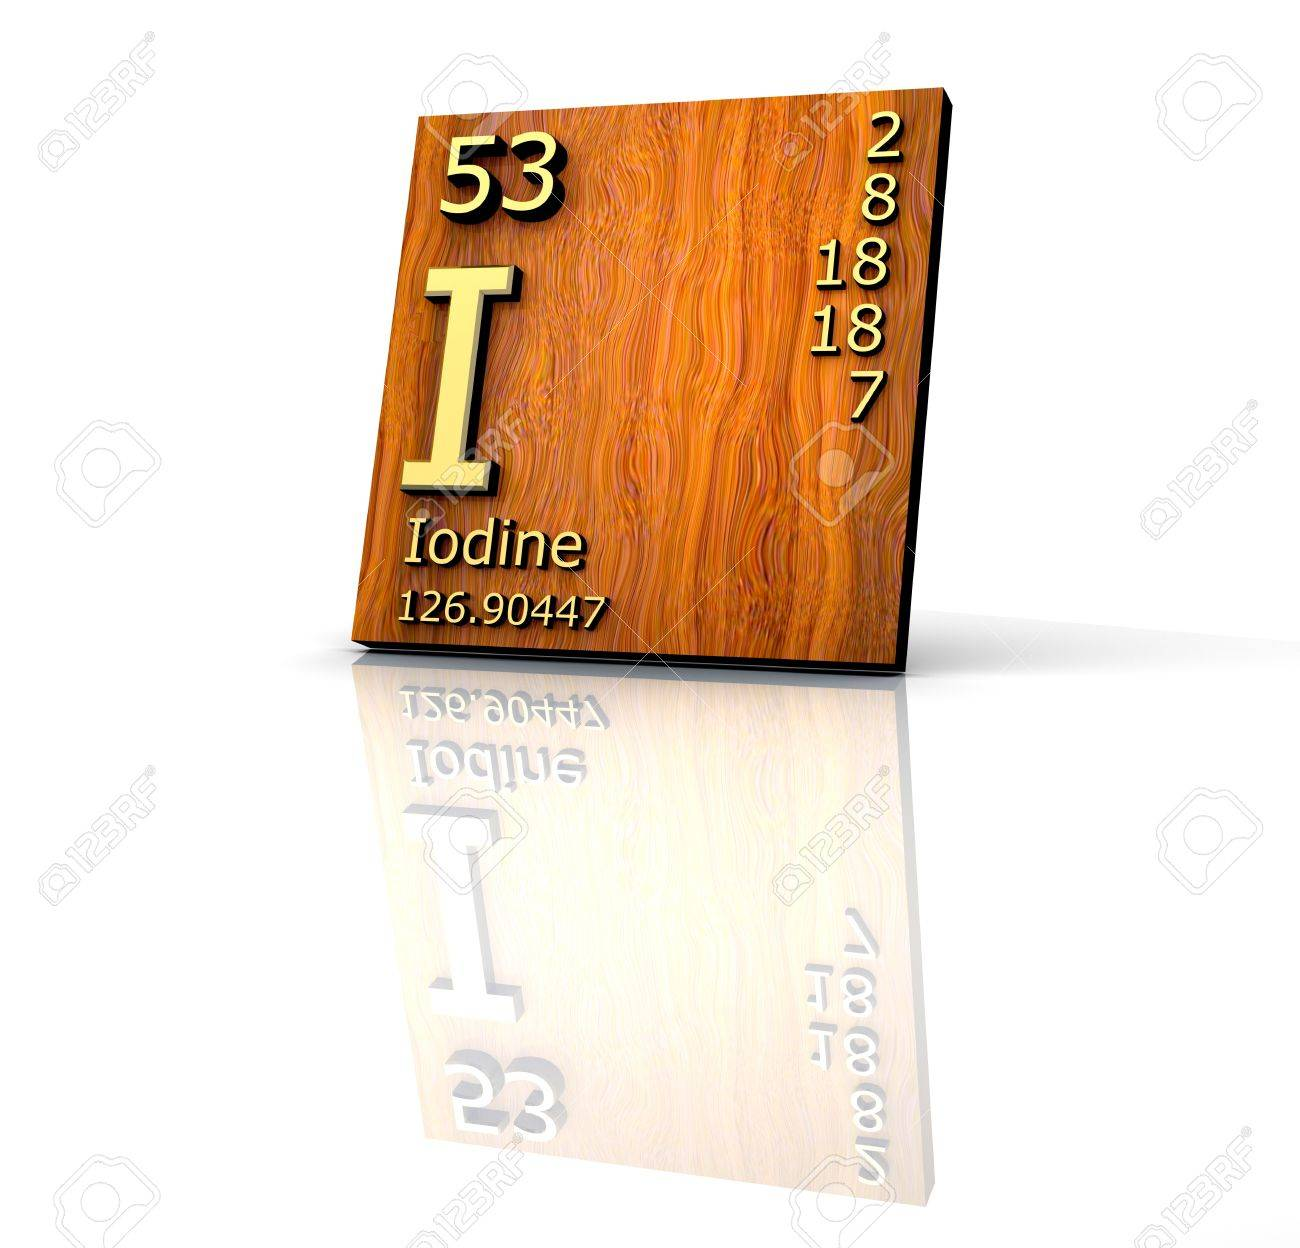 Periodic table iodine image collections periodic table images periodic table symbol for iodine images periodic table images iodine form periodic table of elements wood gamestrikefo Choice Image